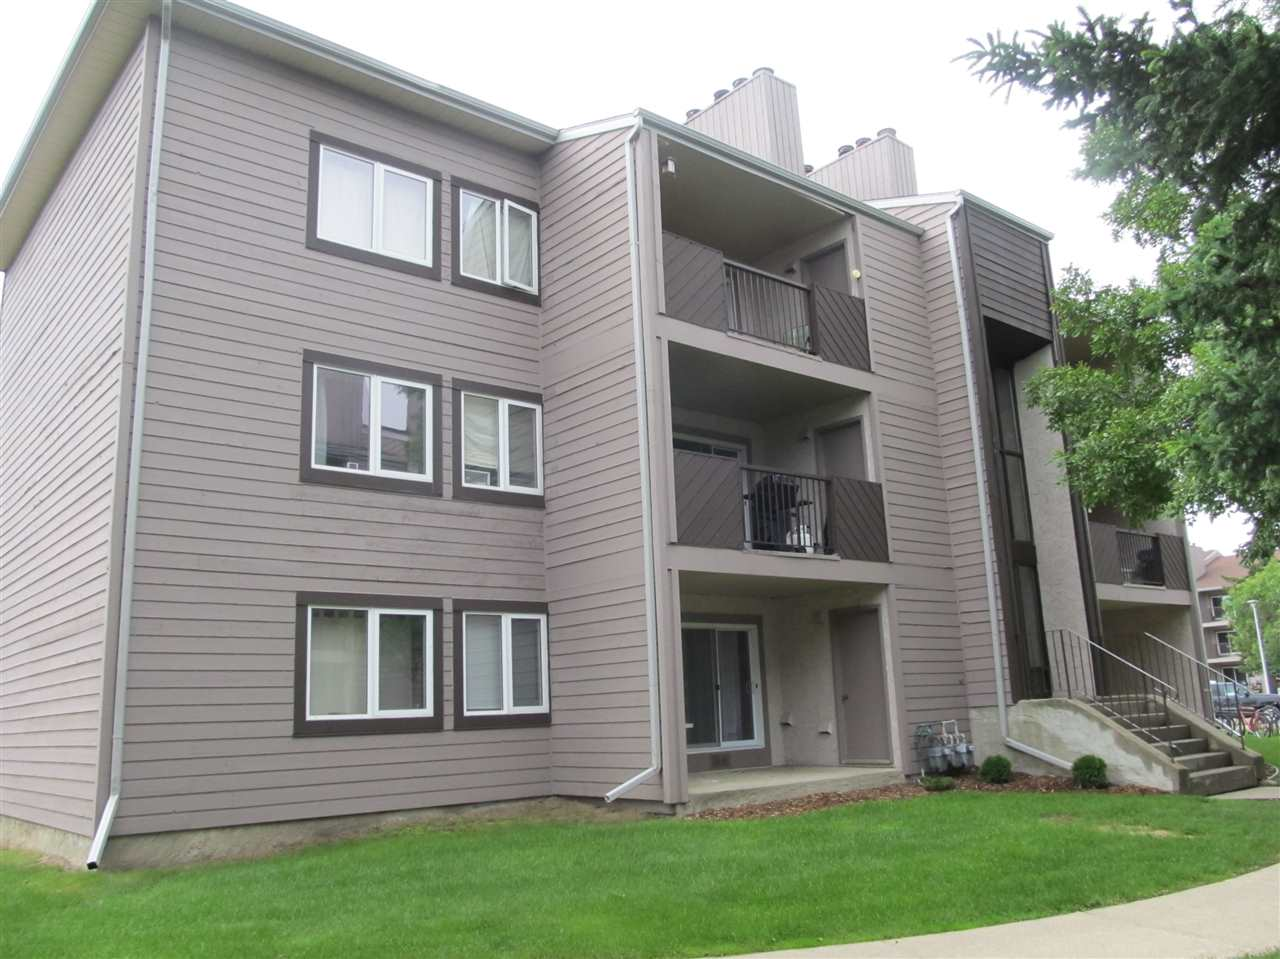 Photo 2: 103 51 AKINS Drive: St. Albert Condo for sale : MLS® # E4060963